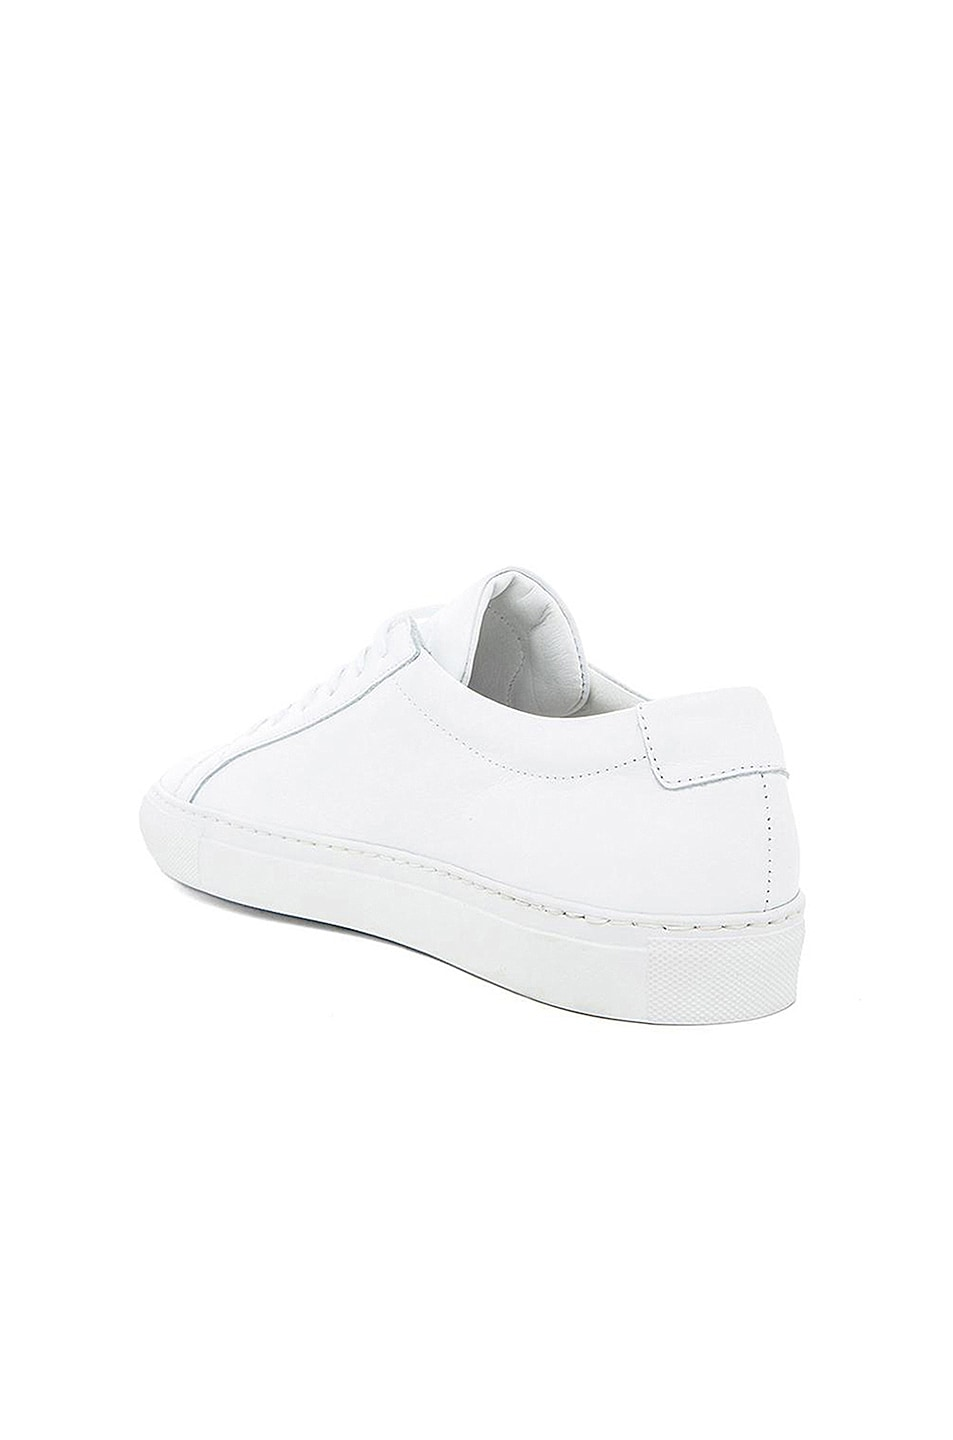 Image 4 of Common Projects Original Leather Achilles Low in White